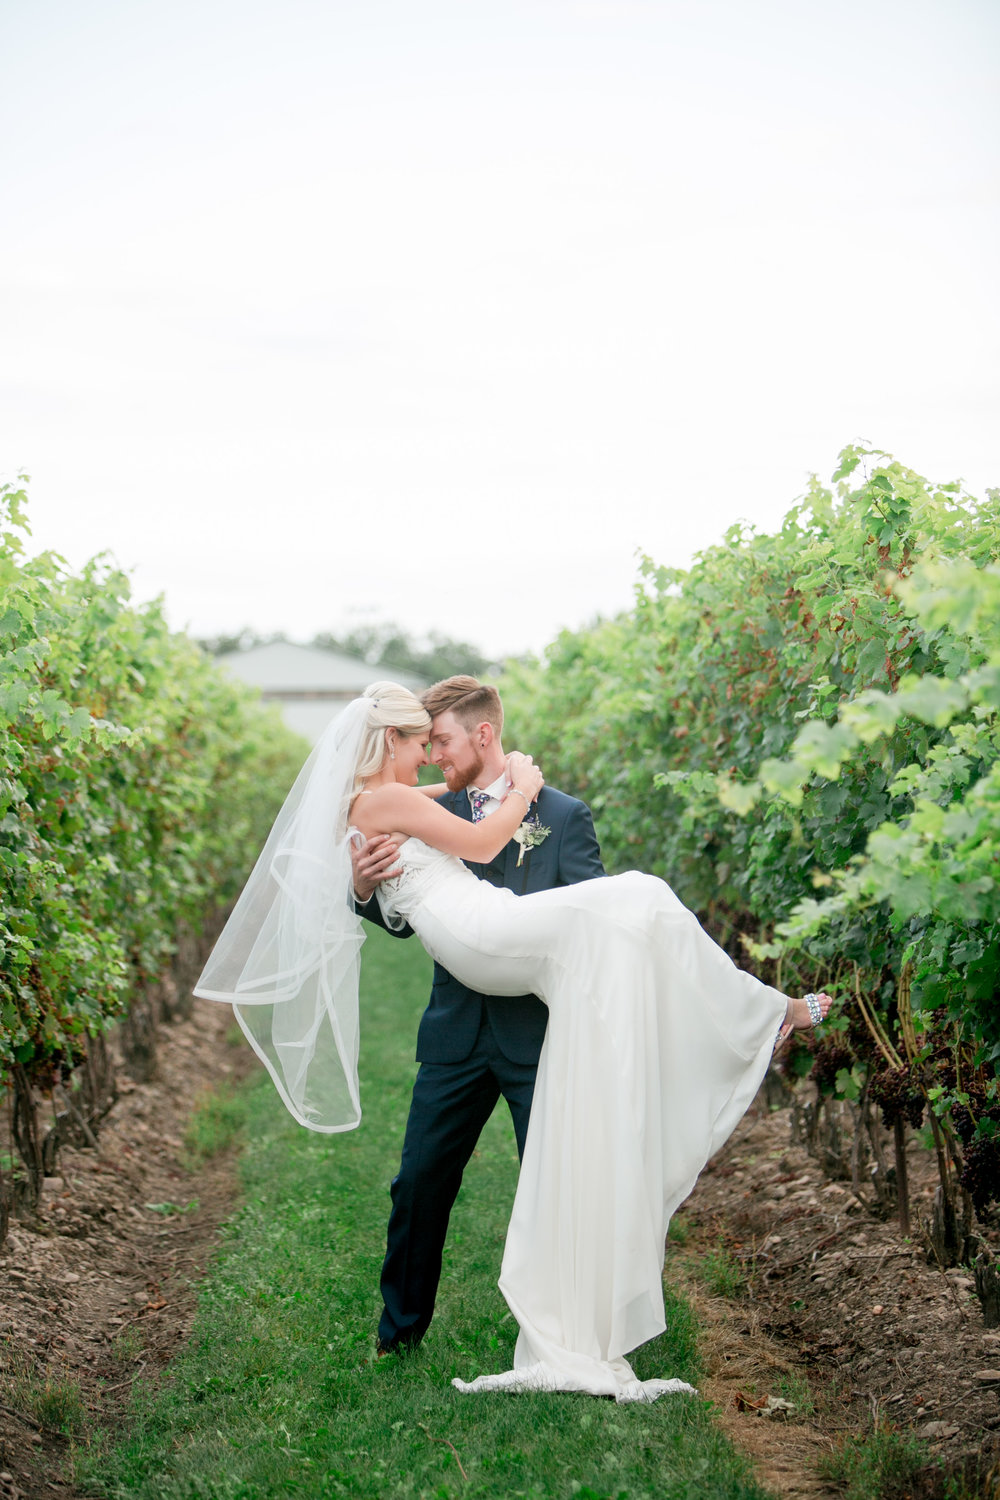 Maddy + Brandon - Daniel Ricci Weddings High Res. Finals-475.jpg